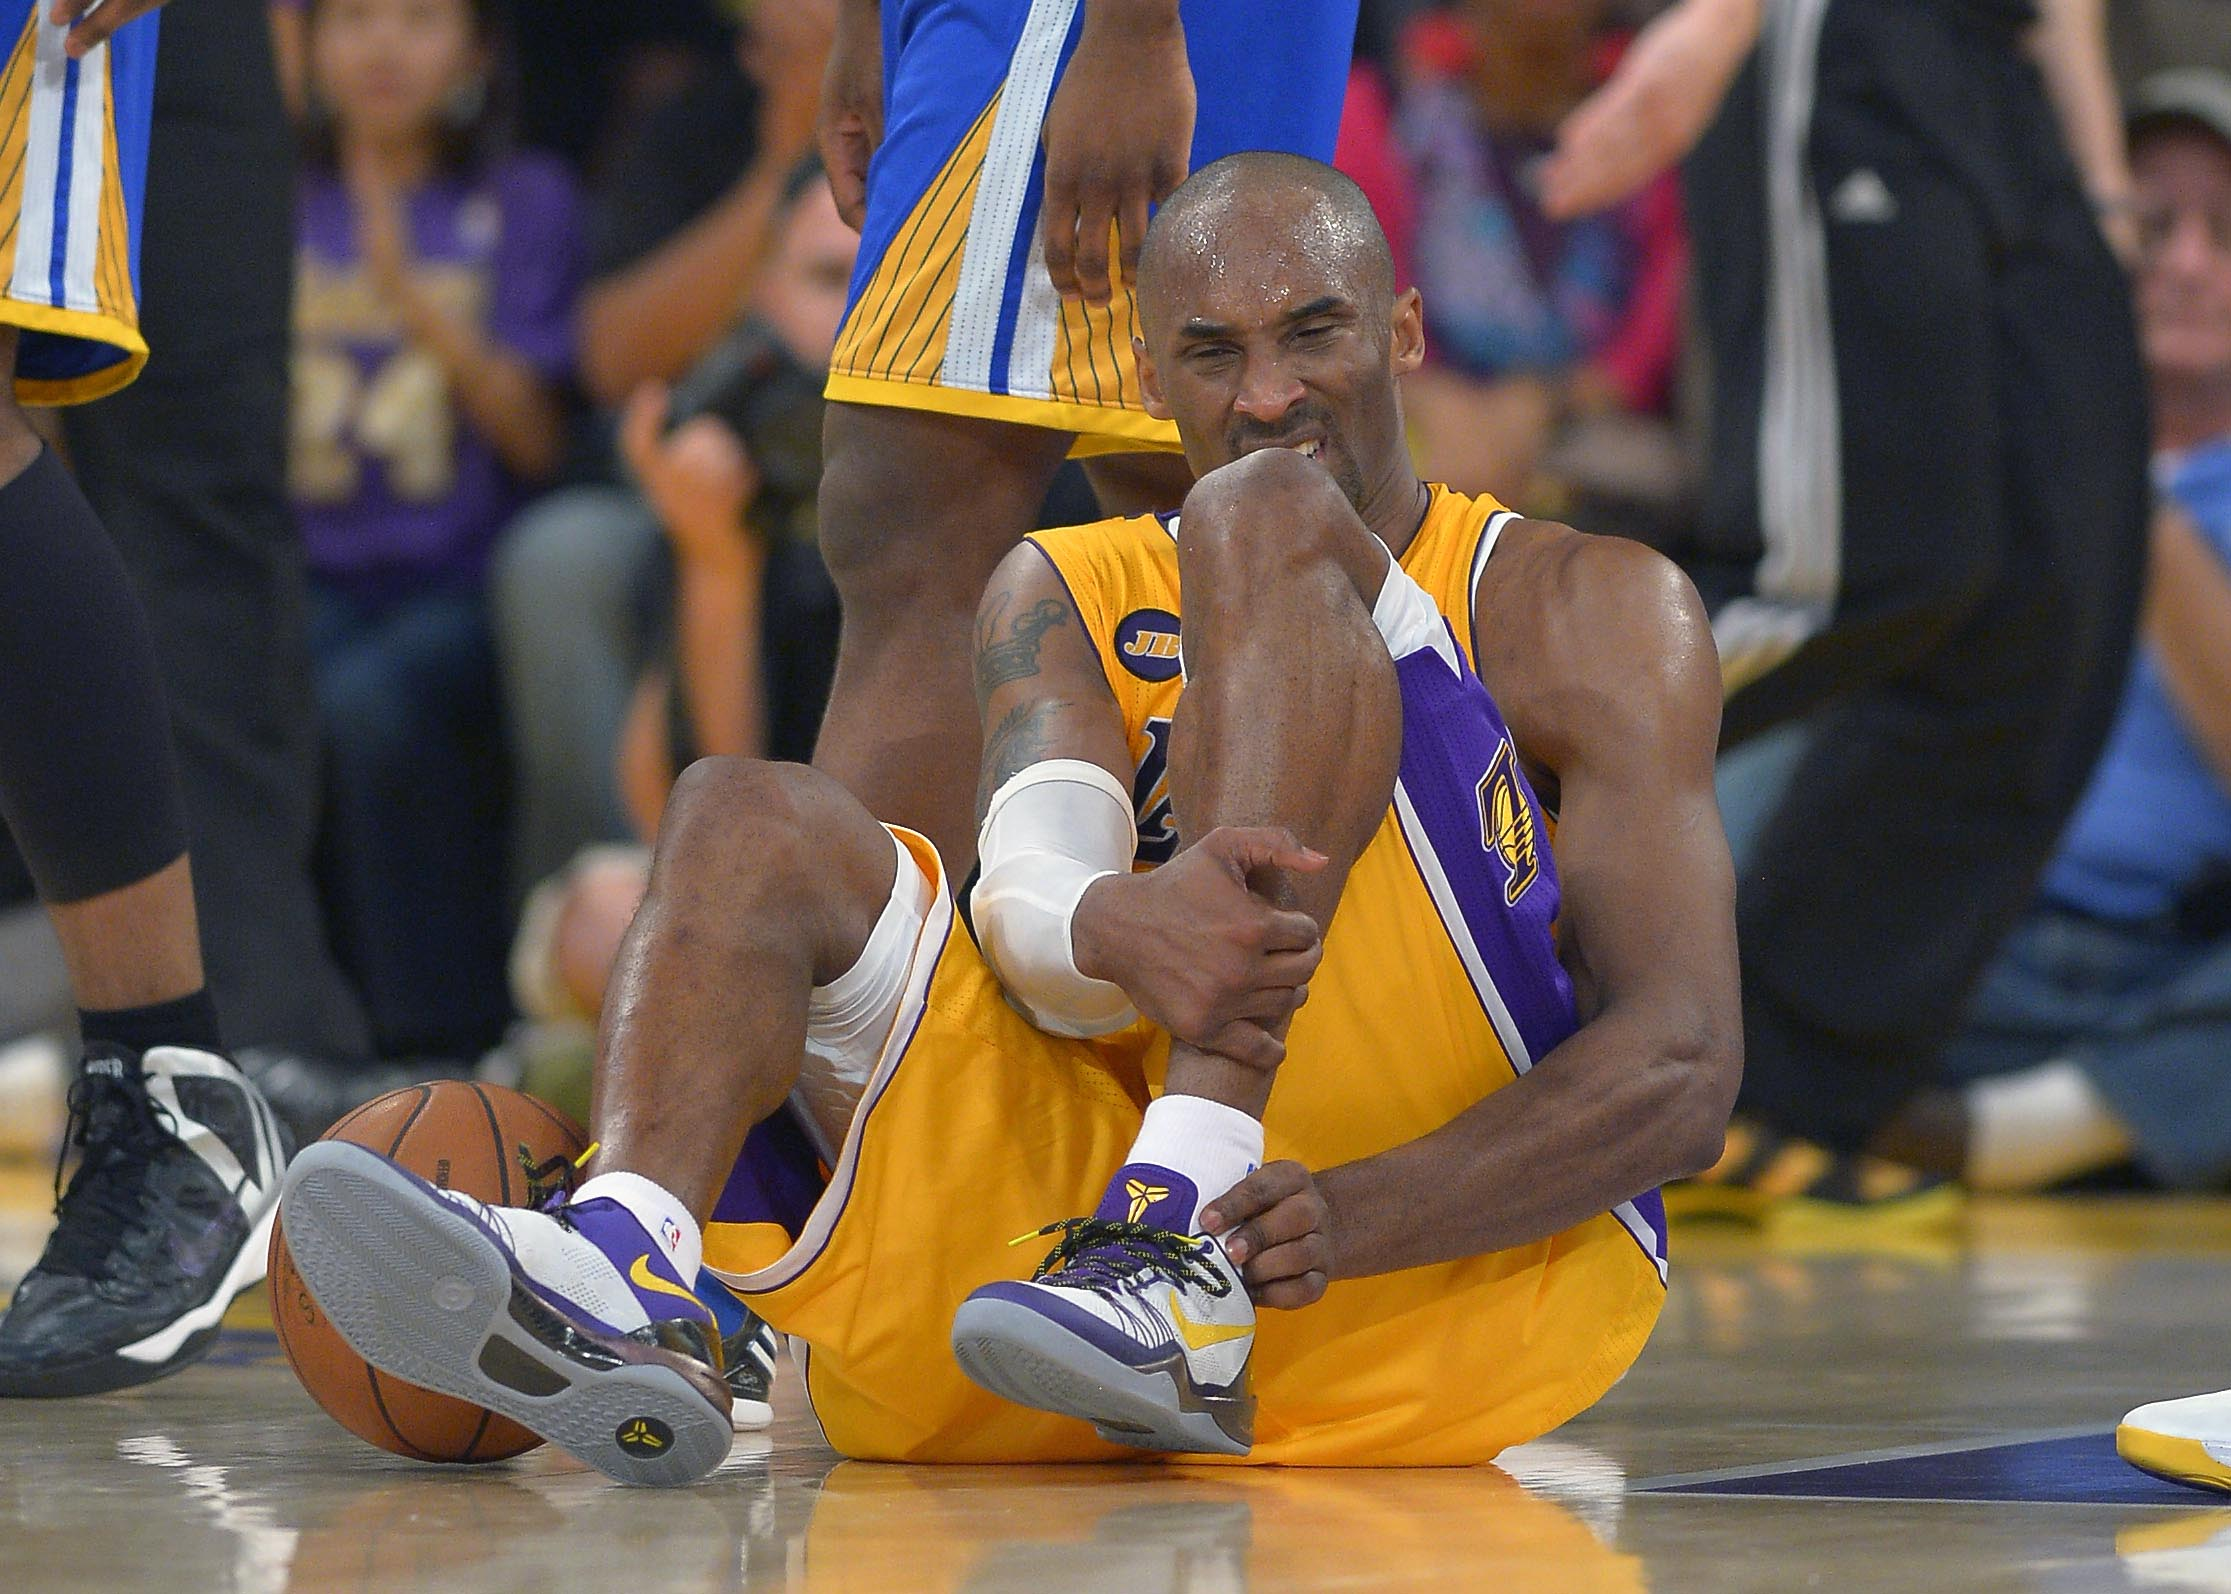 In this April 12, 2013 file photo, Los Angeles Lakers guard Kobe Bryant grimaces after being injured during the second half of their NBA basketball game against the Golden State Warriors, in Los Angeles. Bryant won't be back on the court for the Lakers this season. The Lakers said Bryant was examined by team physician Dr. Steve Lombardo, who determined that the left knee injury that has kept Bryant out of the lineup still hasn't healed